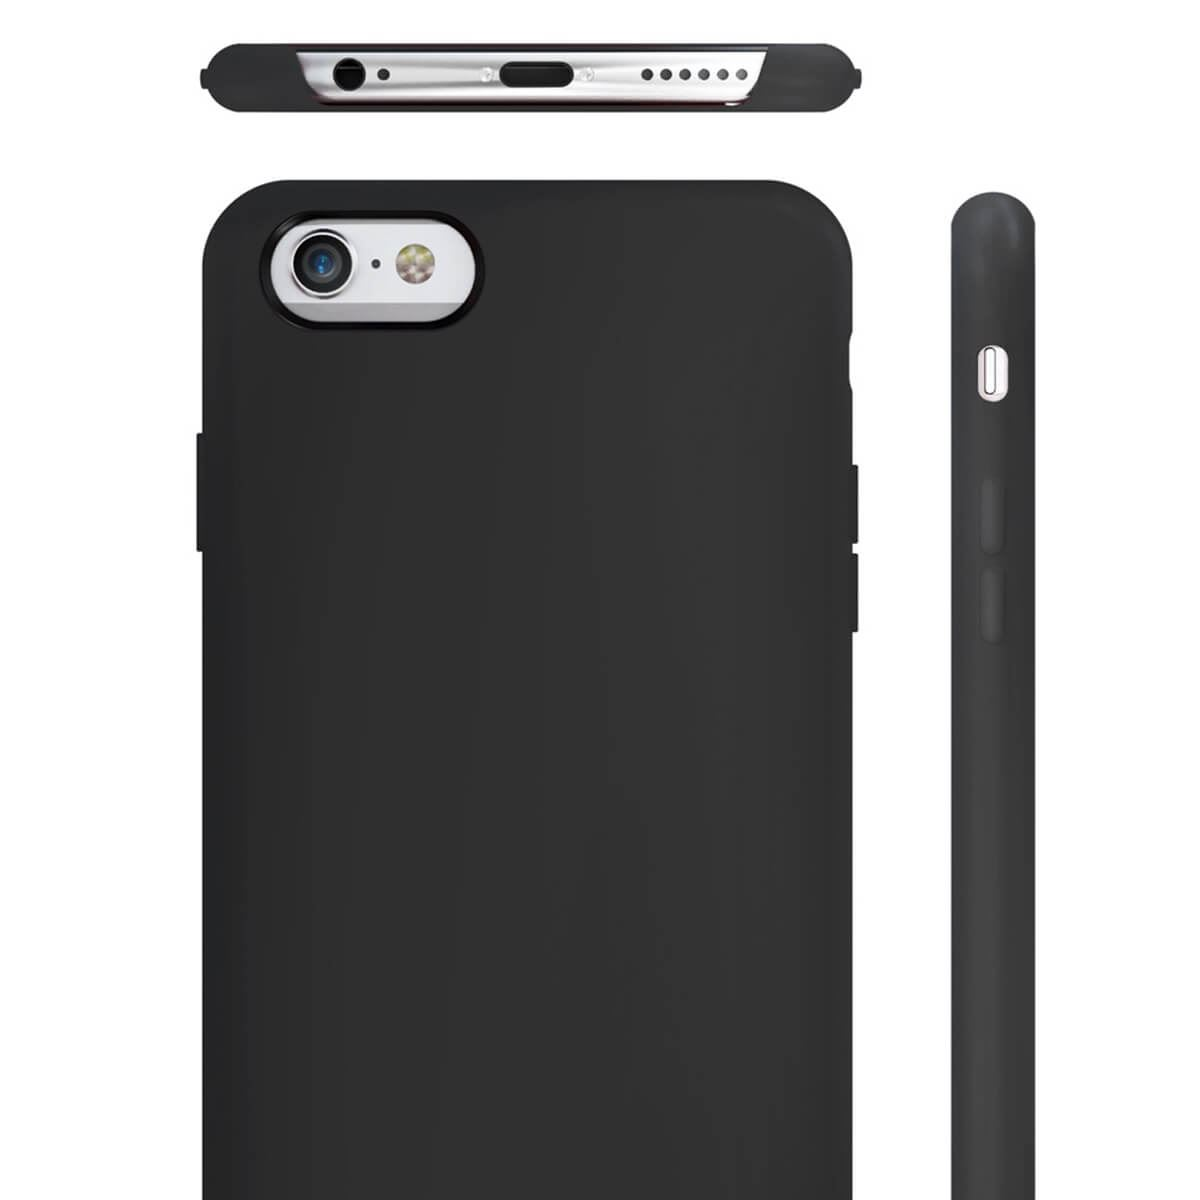 Liquid-Silicone-Phone-Case-For-Apple-iPhone-Soft-Shockproof-Matte-Back-Cover thumbnail 15